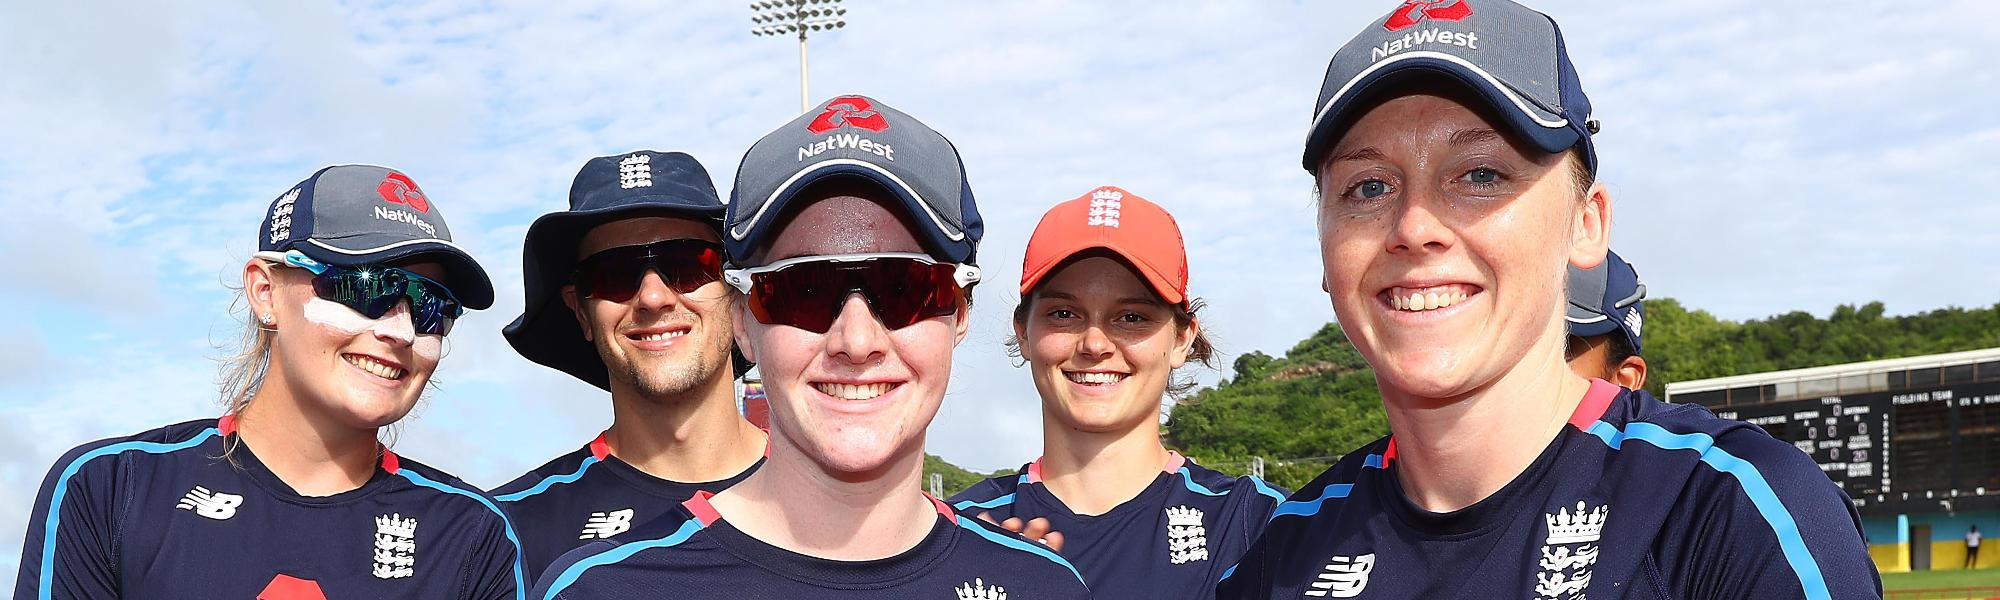 Heather Knight of England presents Kirstie Gordon of England with her first cap during the ICC Women's World T20 2018 match between England and Bangladesh at Darren Sammy Cricket Ground on November 12, 2018 in Gros Islet, Saint Lucia.